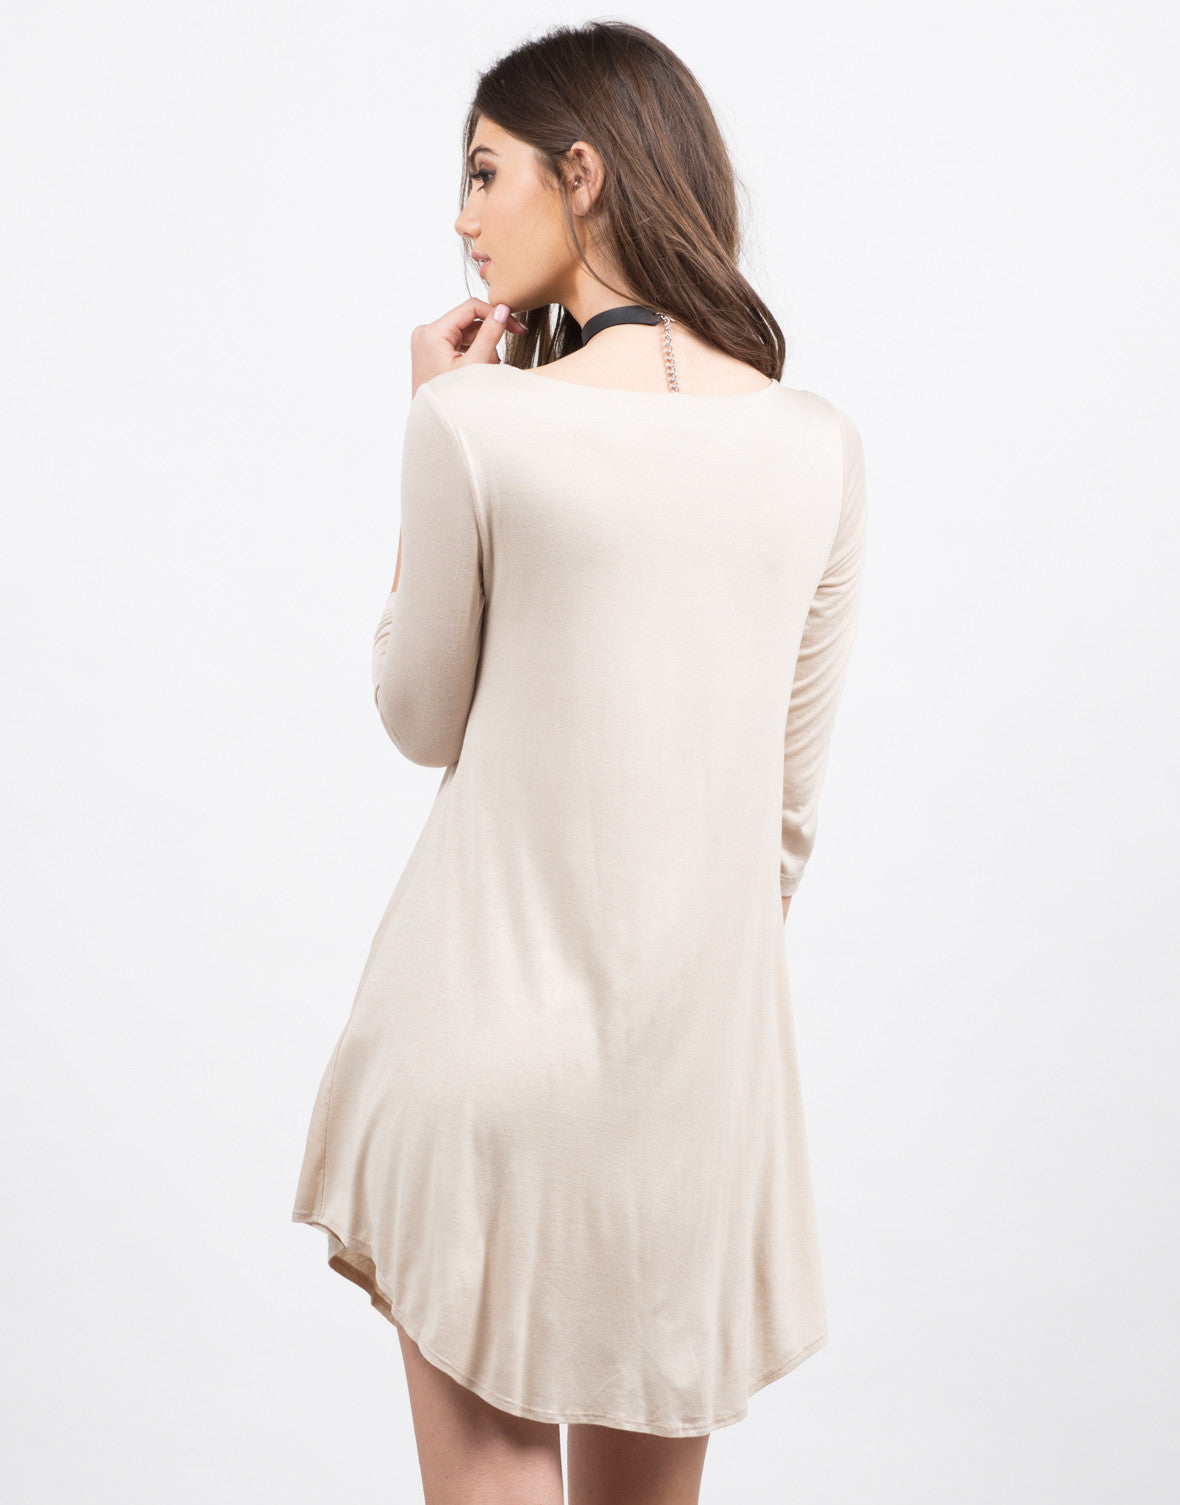 Back View of Basic 3/4 Dress